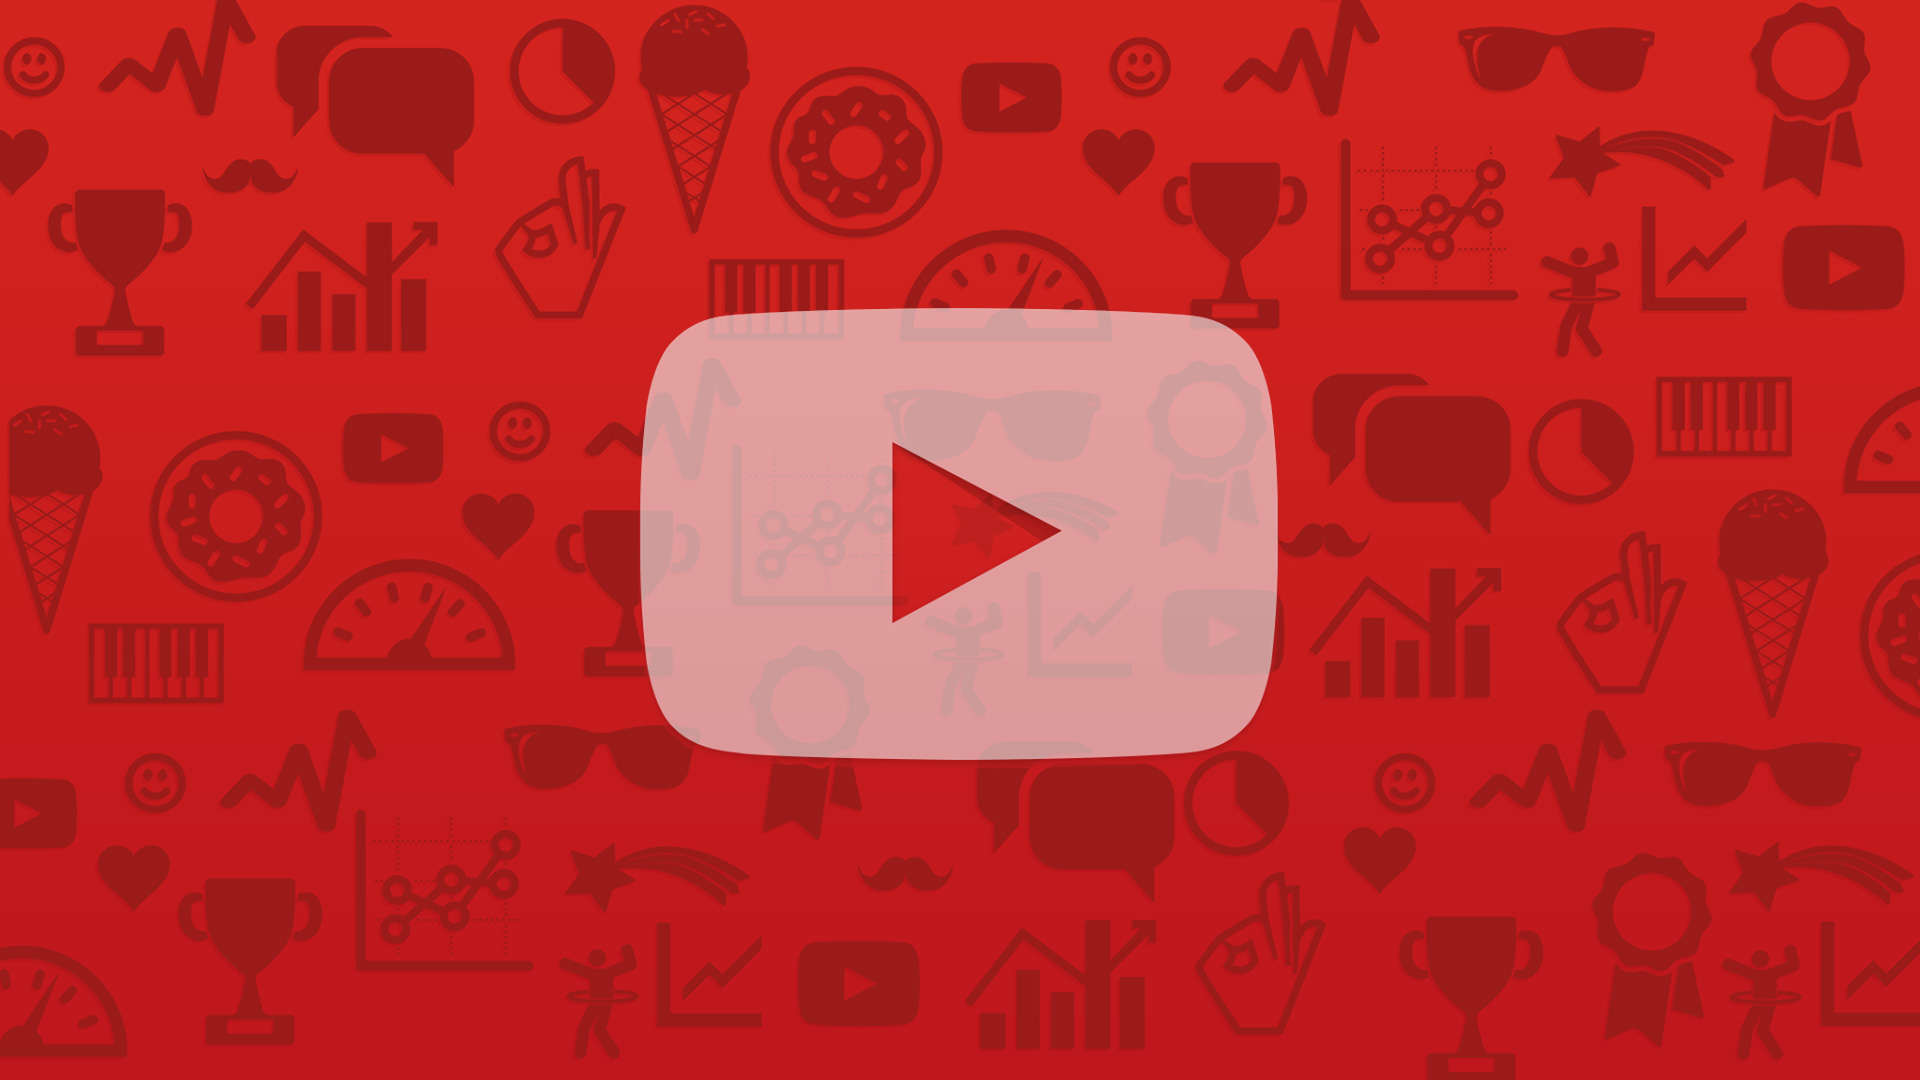 GREAT BRANDS LEVERAGE THE POWER OF VIDEO TO STORY TELL THEIR PRODUCTS AND SERVICES